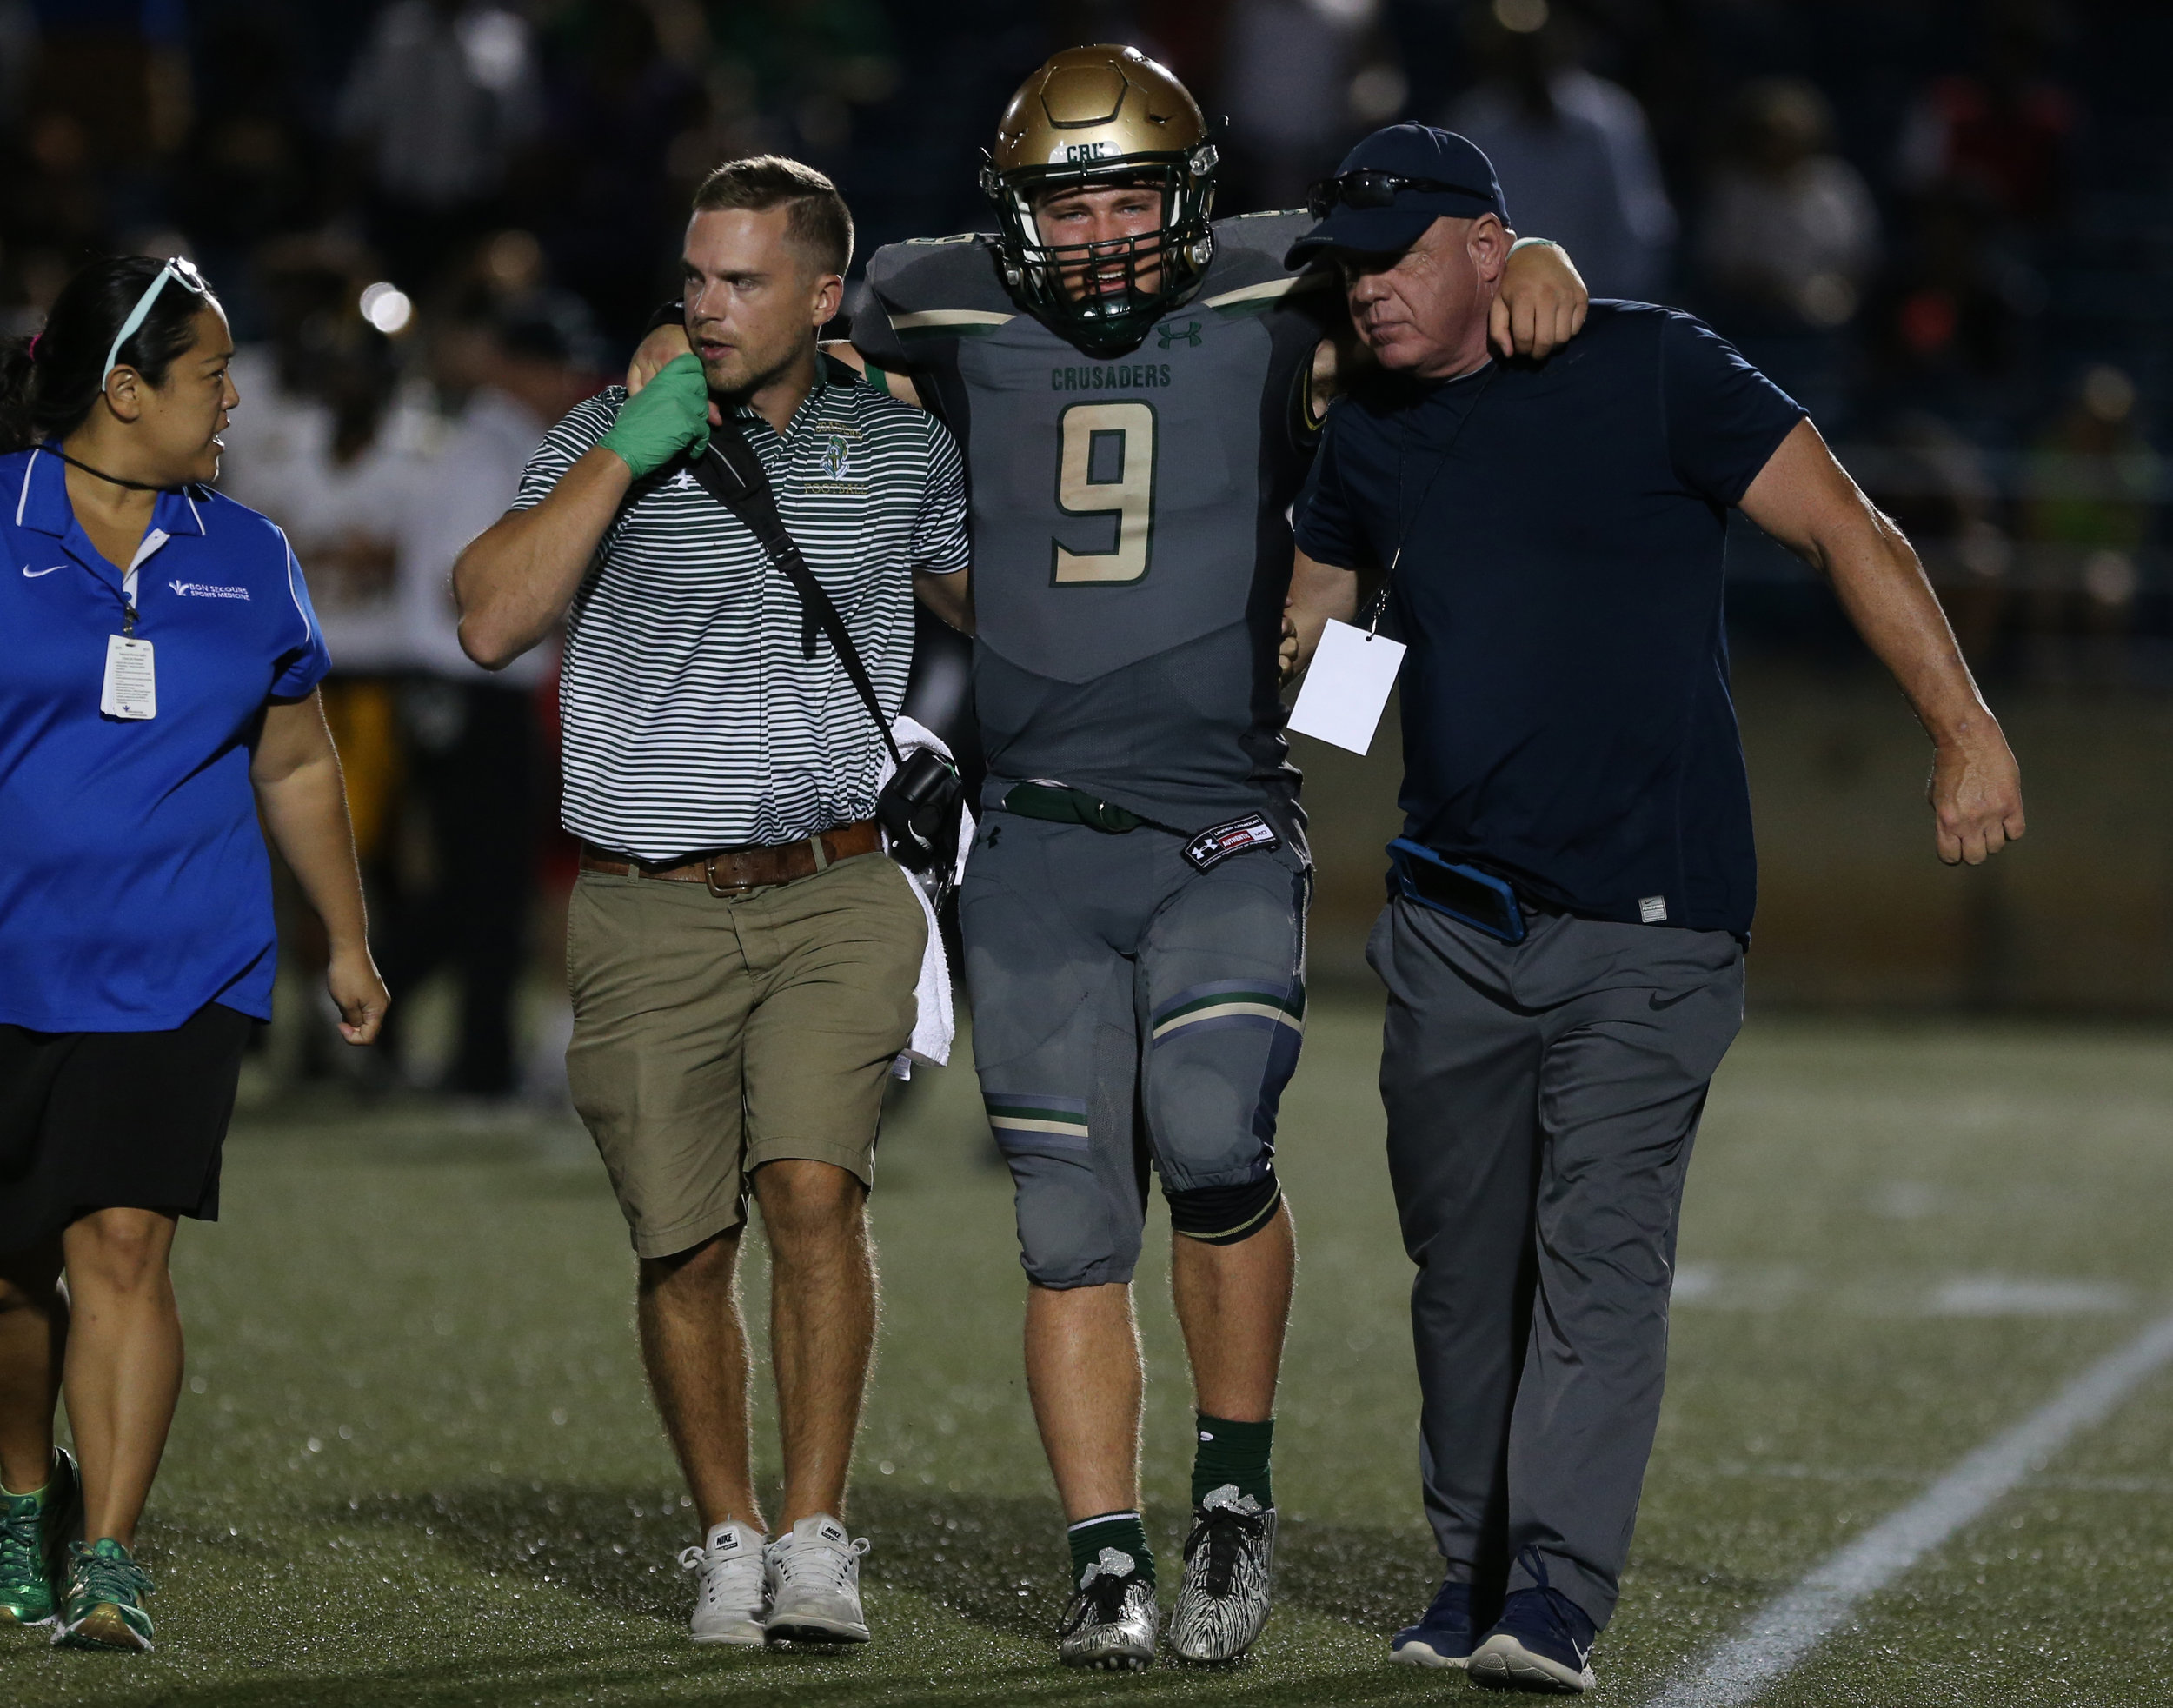 Bishop Sullivan's Jake Low is helped off the field after an injury  during the Crusaders' 14-7 loss, Saturday, August 26, 2017 at the Sportsplex in Virginia Beach.